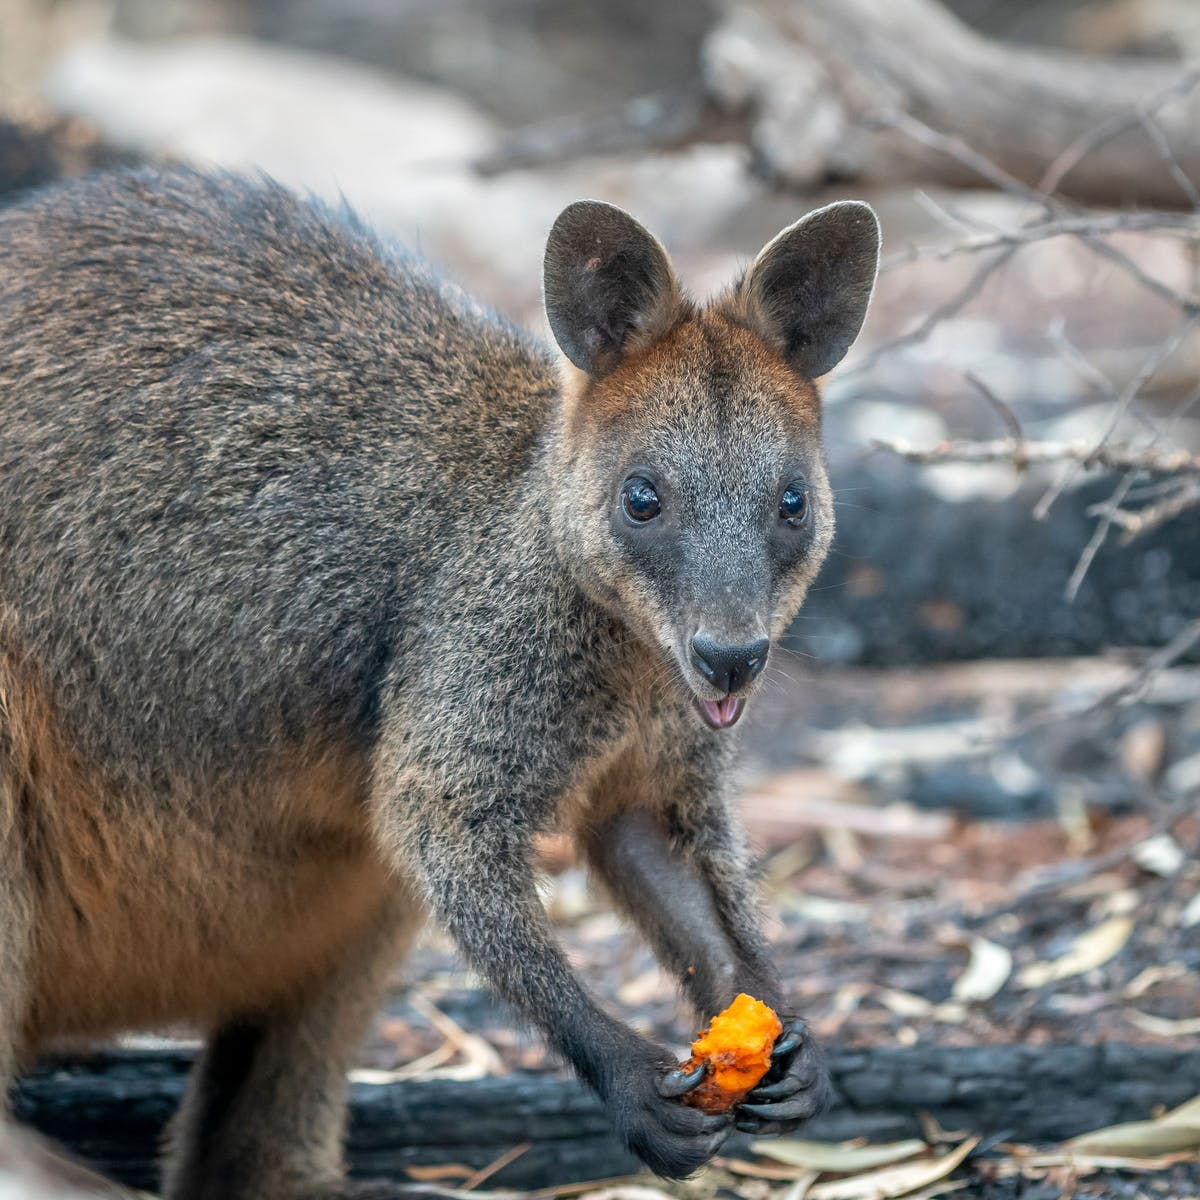 """Operation Rock Wallaby: Carrot """"bombs"""" could save Australia's bush animals"""